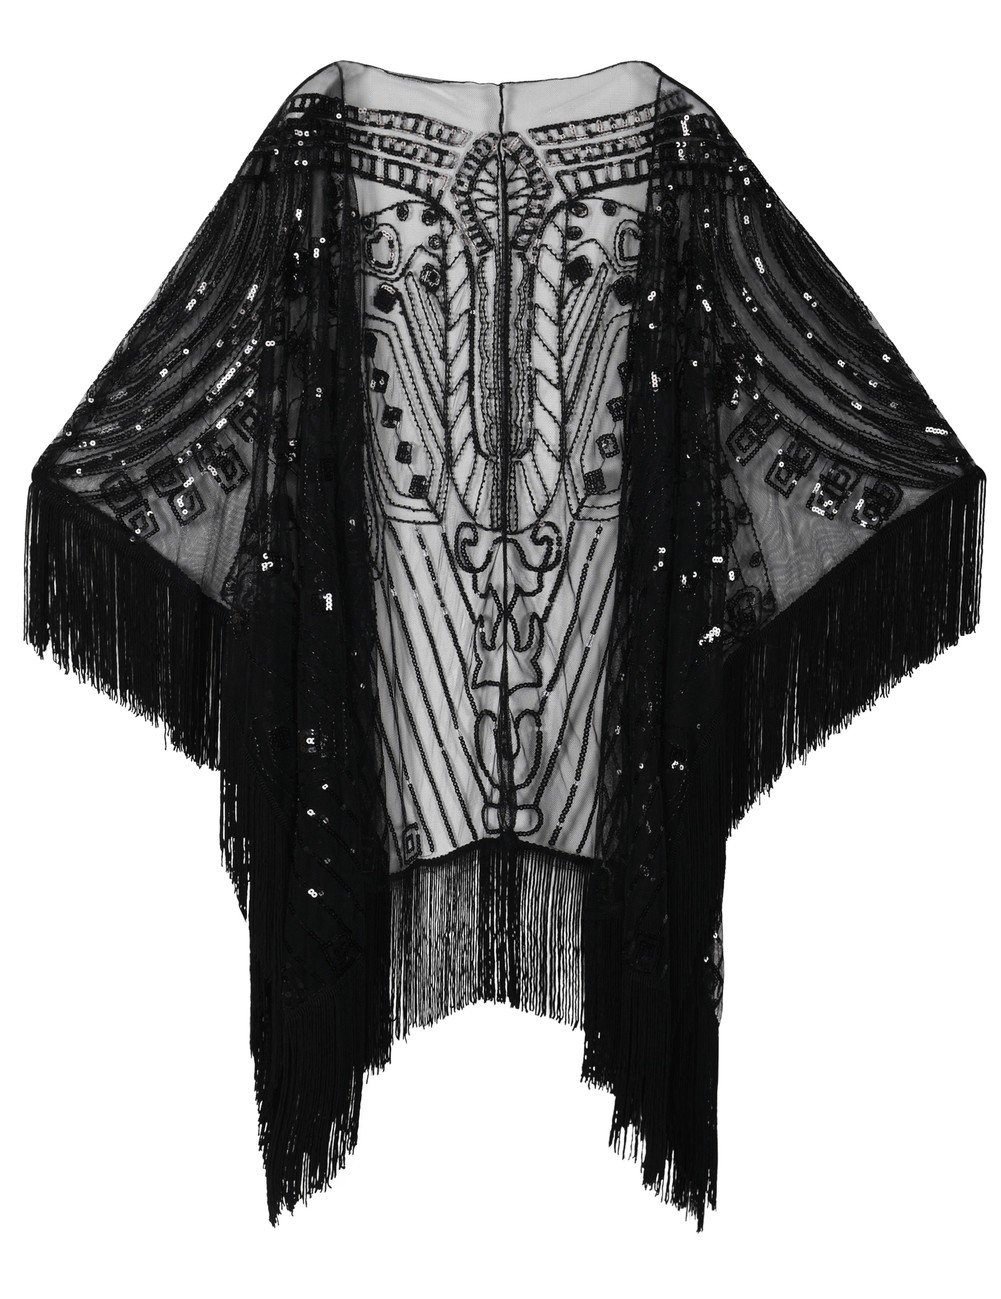 1920s Shawls, Scarves and Evening Jacket Tips Kayamiya Womens Evening Shawl Wraps 1920s Sequin Beaded Cape With Fringe $33.99 AT vintagedancer.com